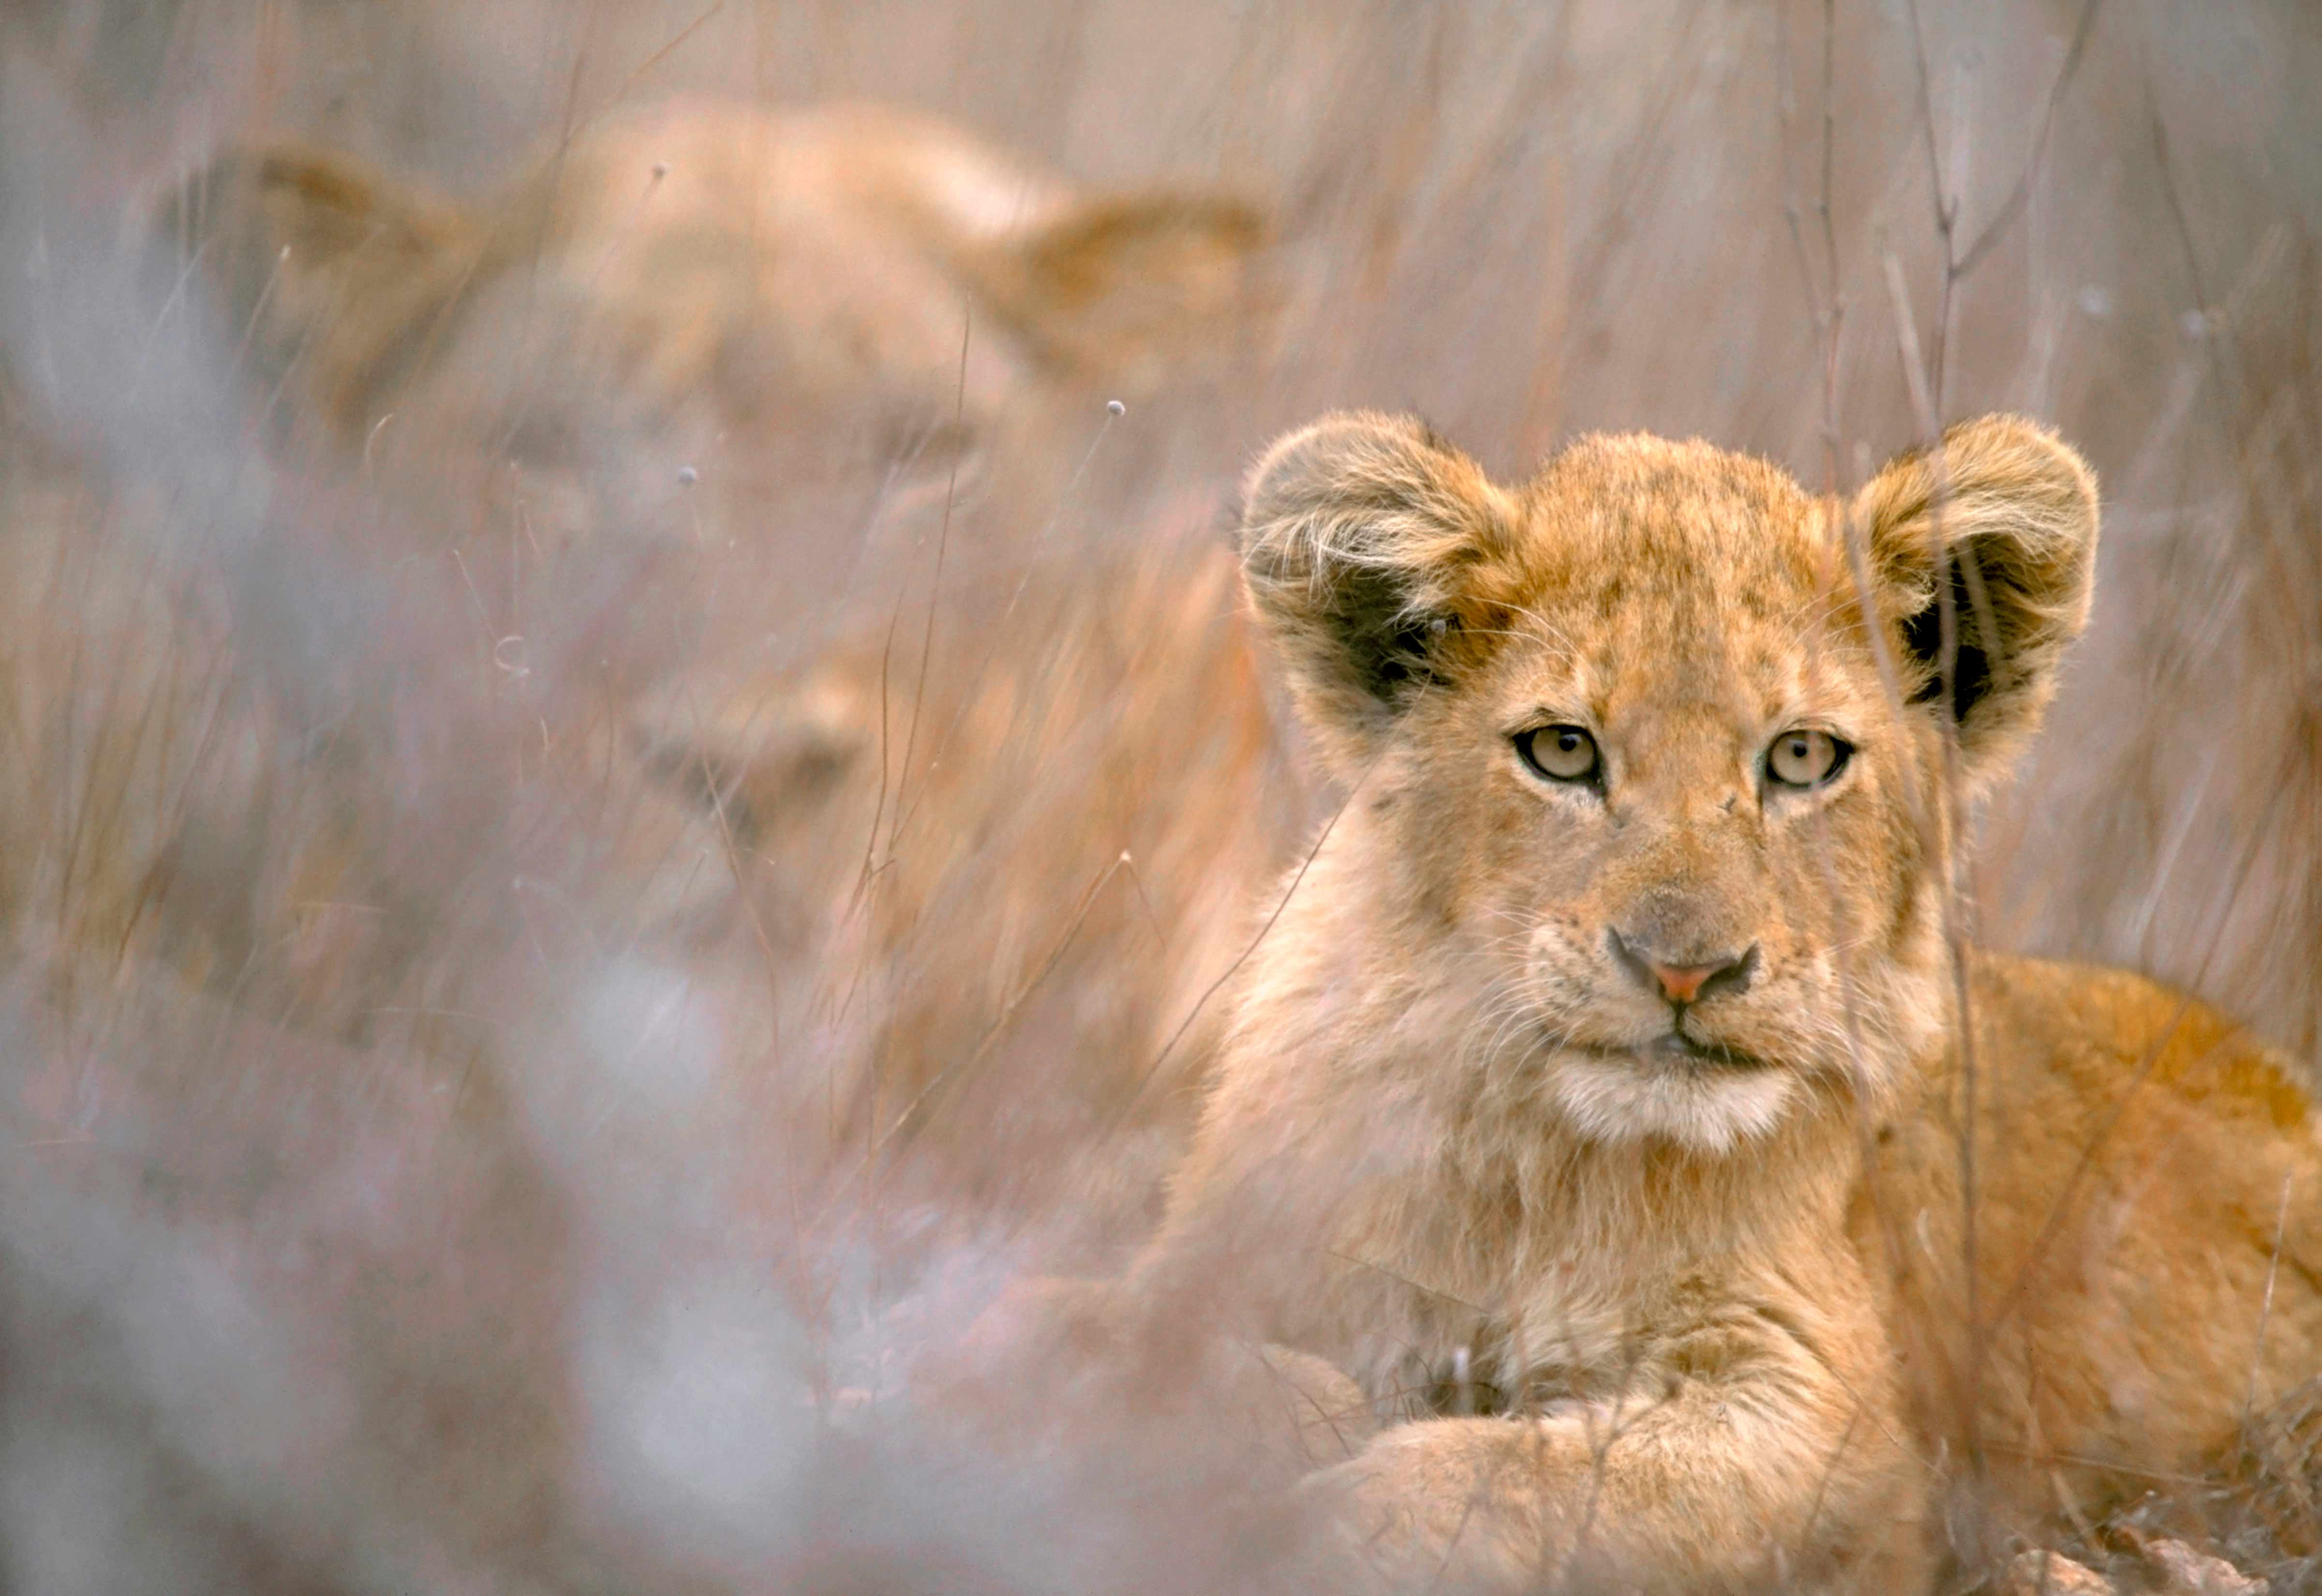 20 cool backgrounds of animals that will blow you away. lions, bats